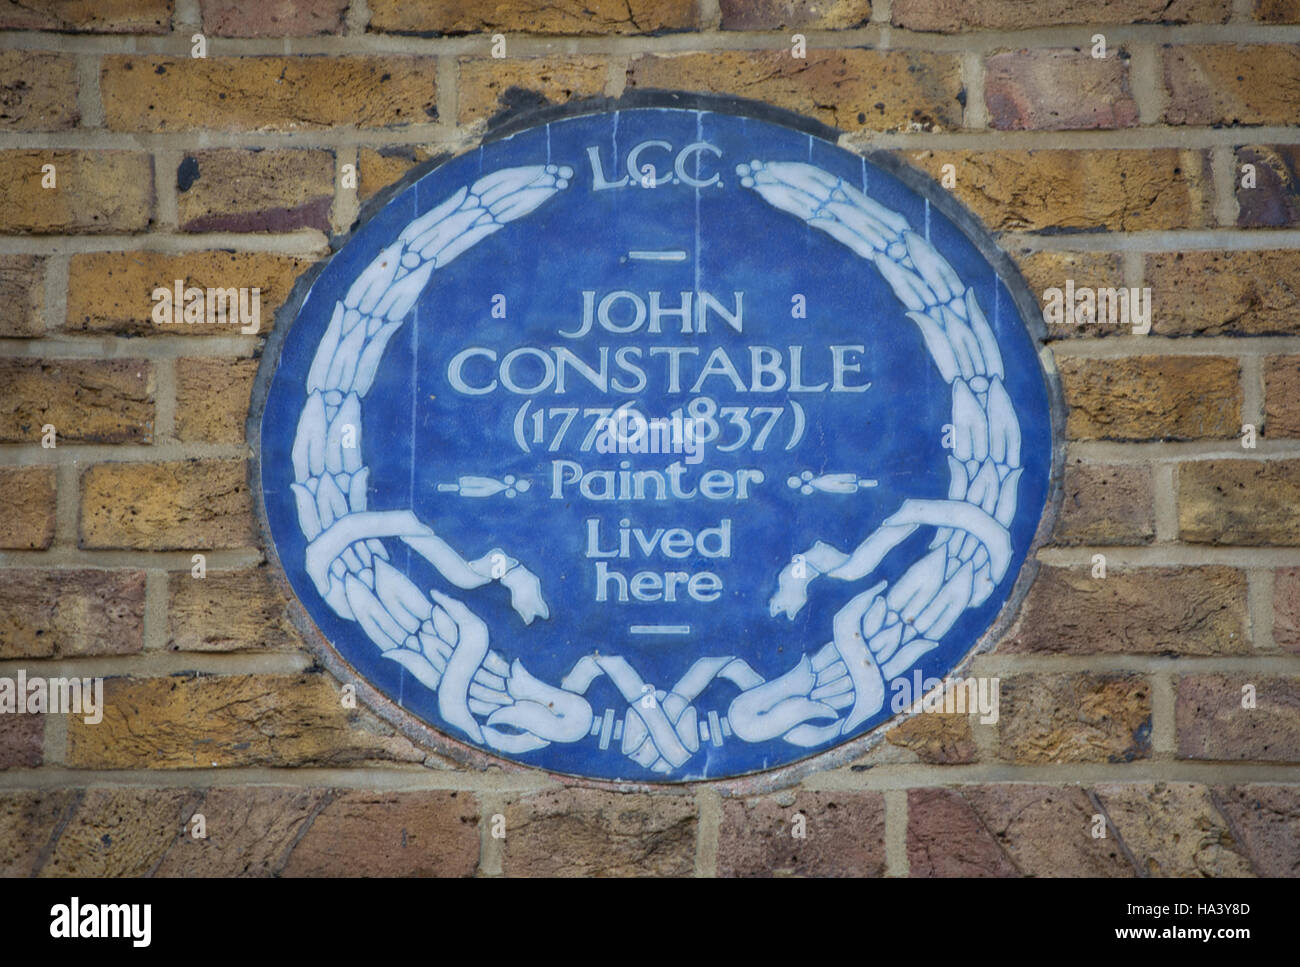 london county council blue plaque marking a home of painter john constable, hampstead, london, england Stock Photo